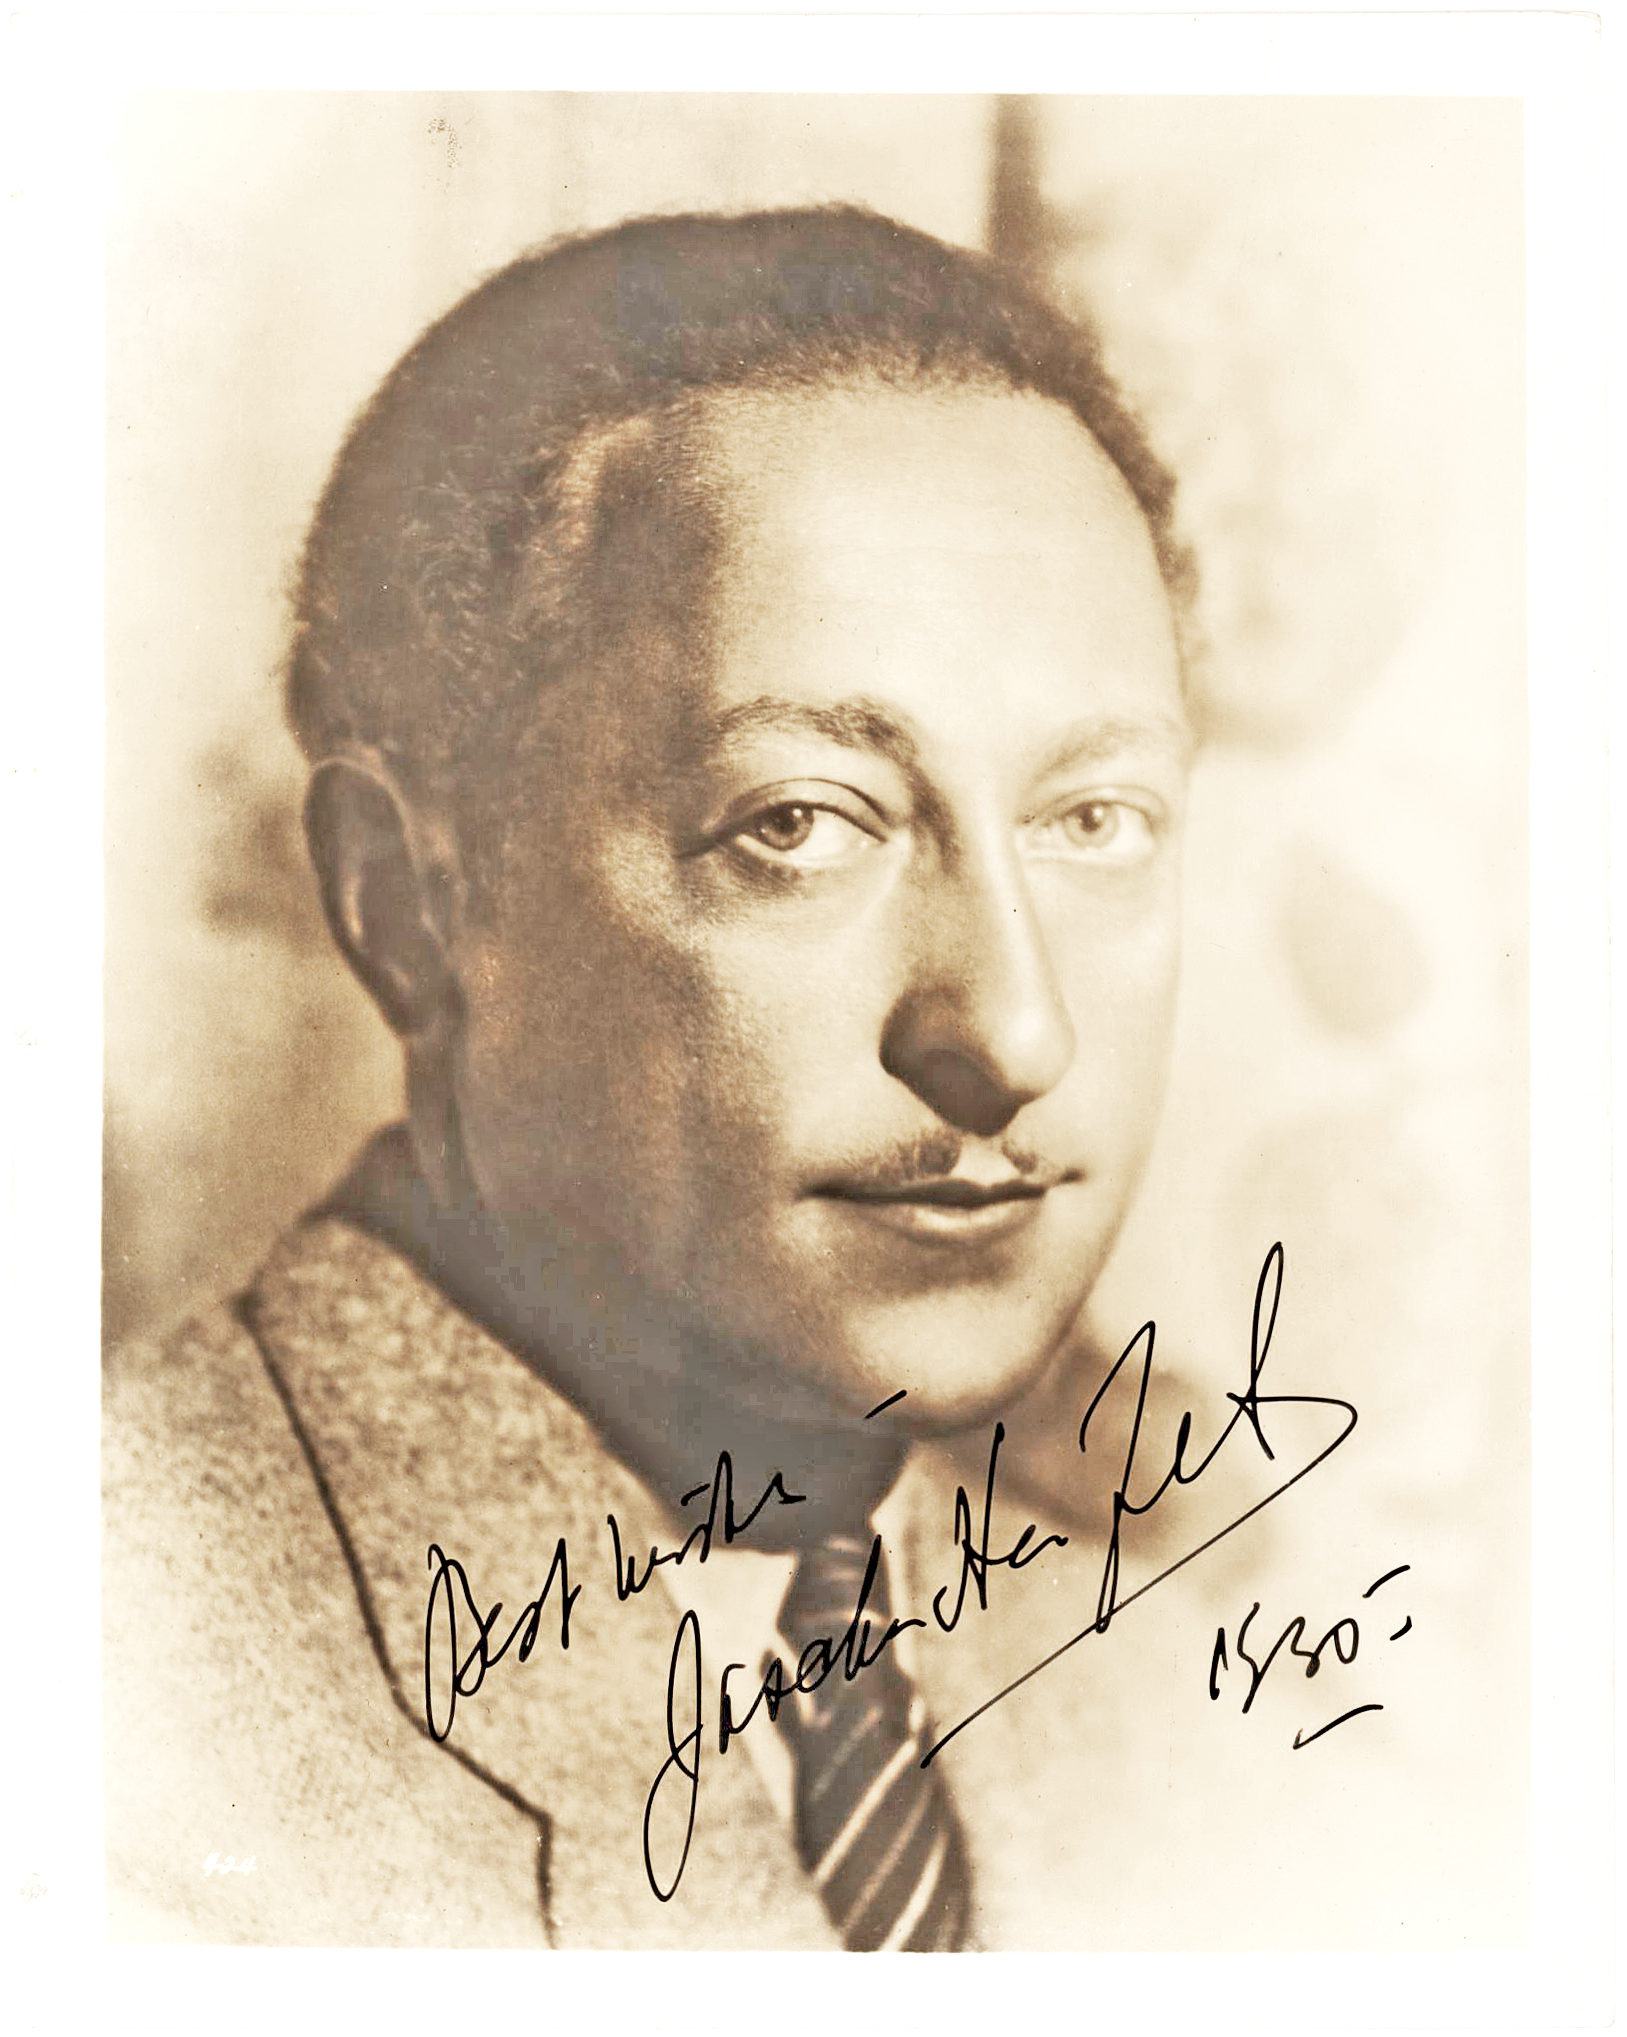 Stunning Signed Image of the Celebrated Russian-Born, American Violinist